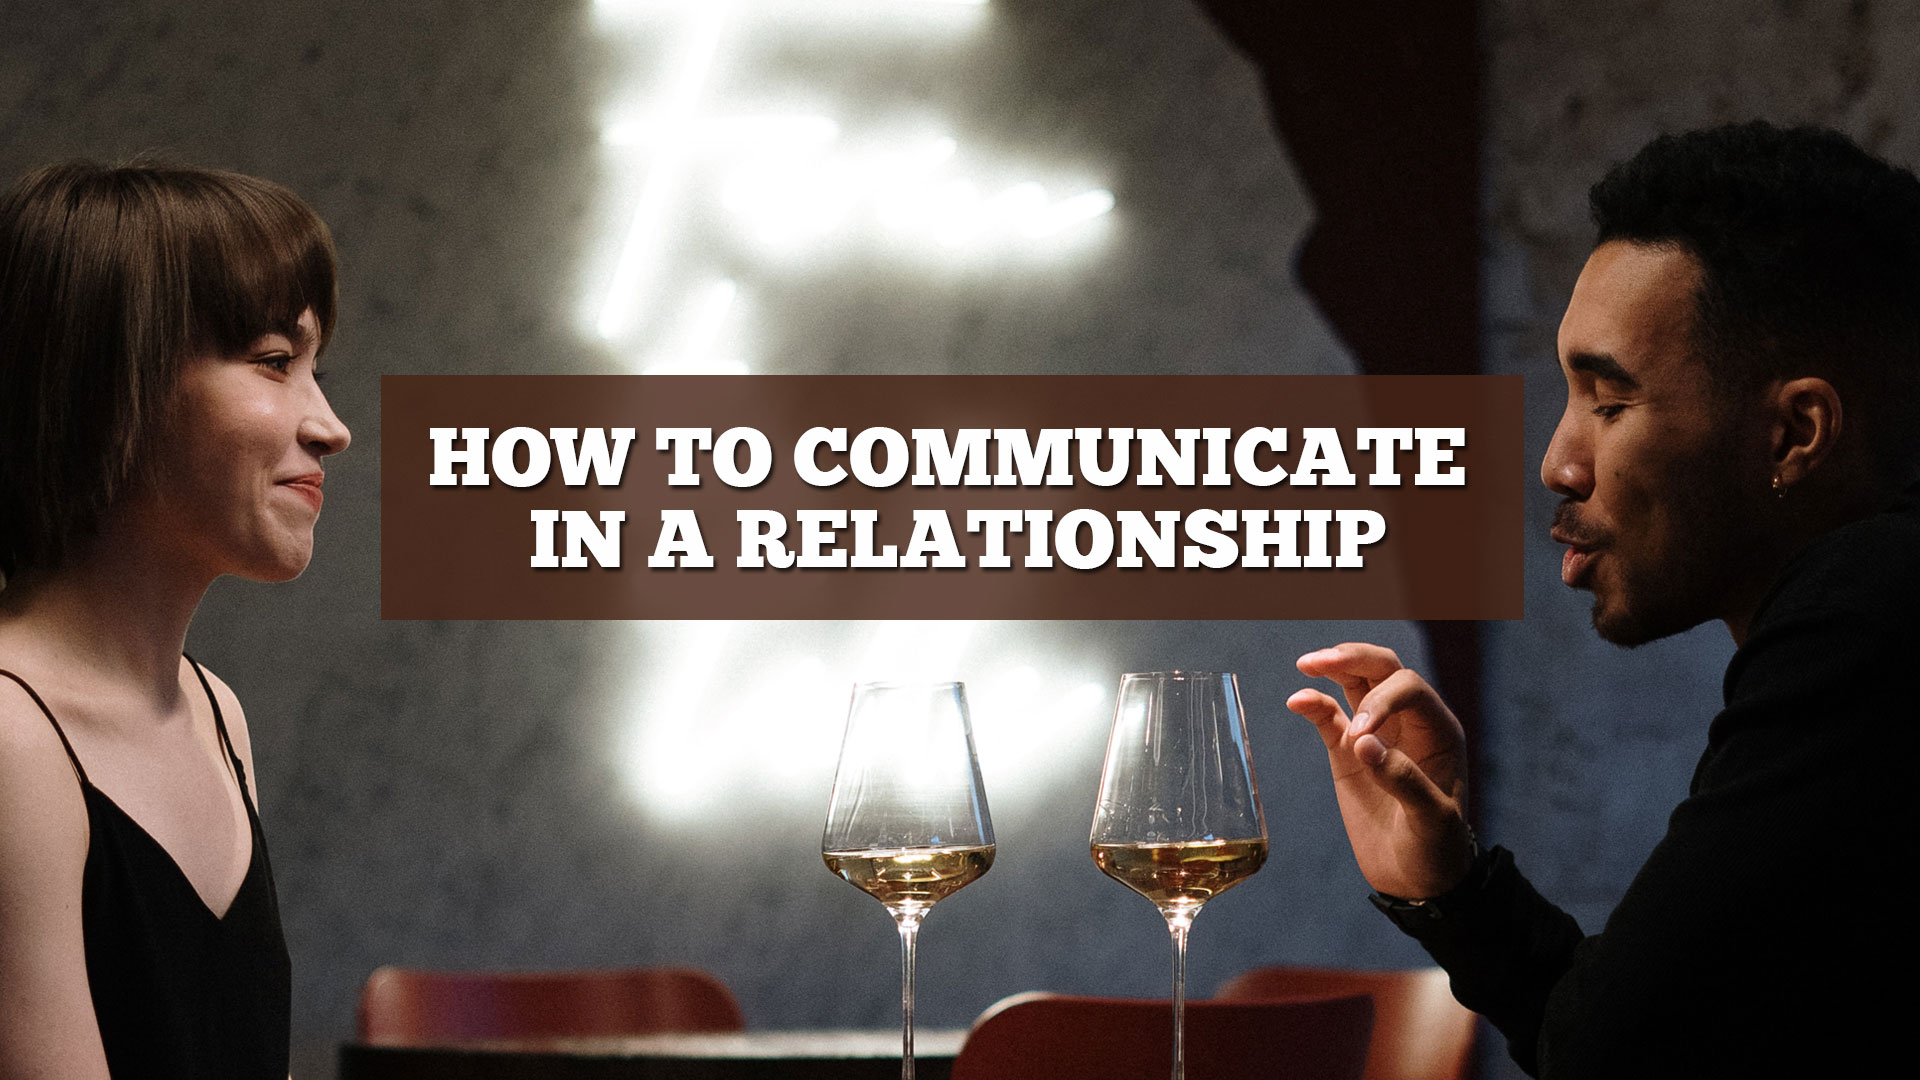 How to Communicate in a Relationship